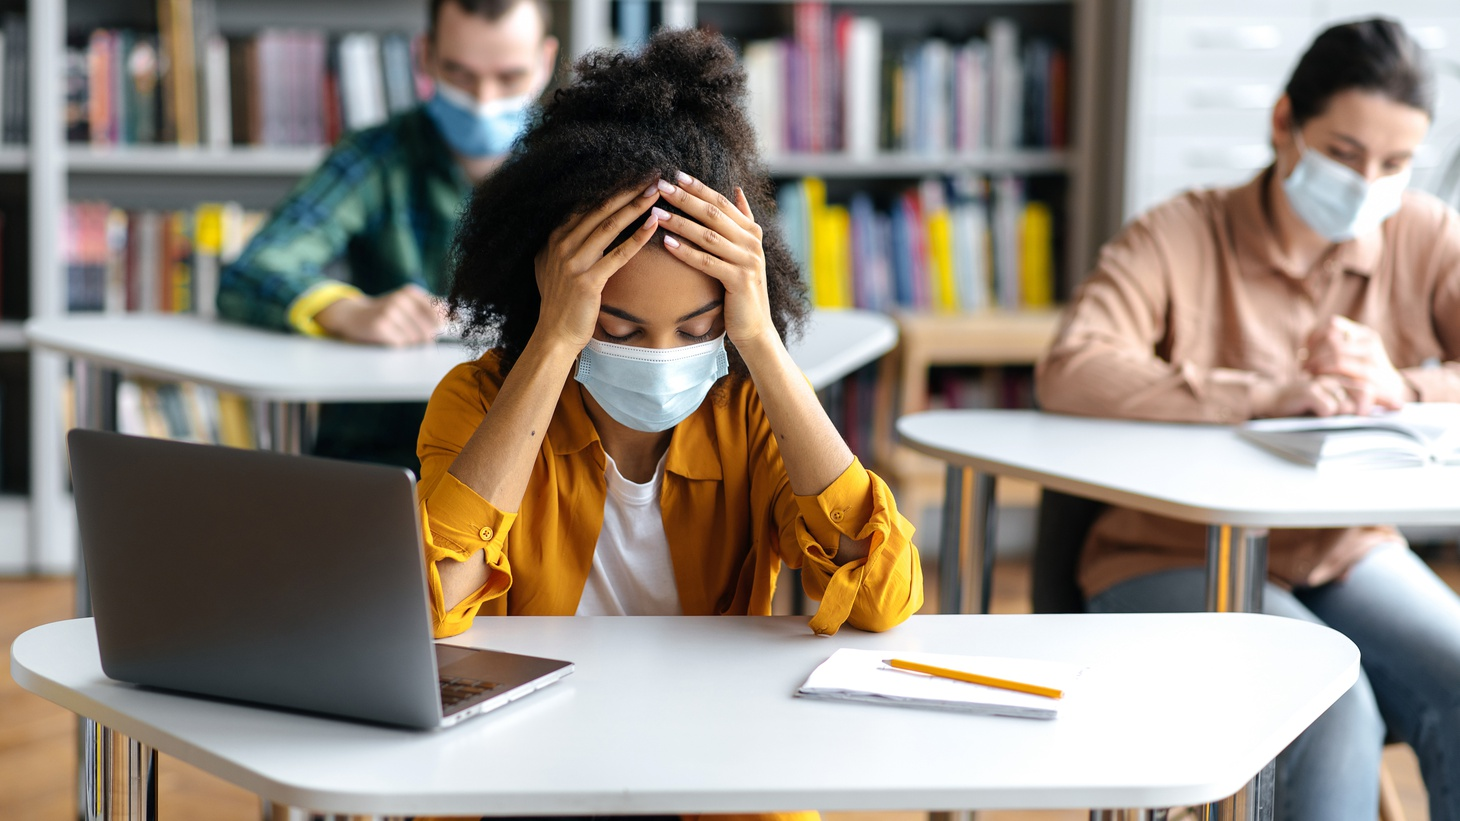 Nearly half of parents of teenagers saw a new or worsening mental health condition in their child since the start of the pandemic,according to a national poll from the C.S. Mott Children's Hospital in Michigan.